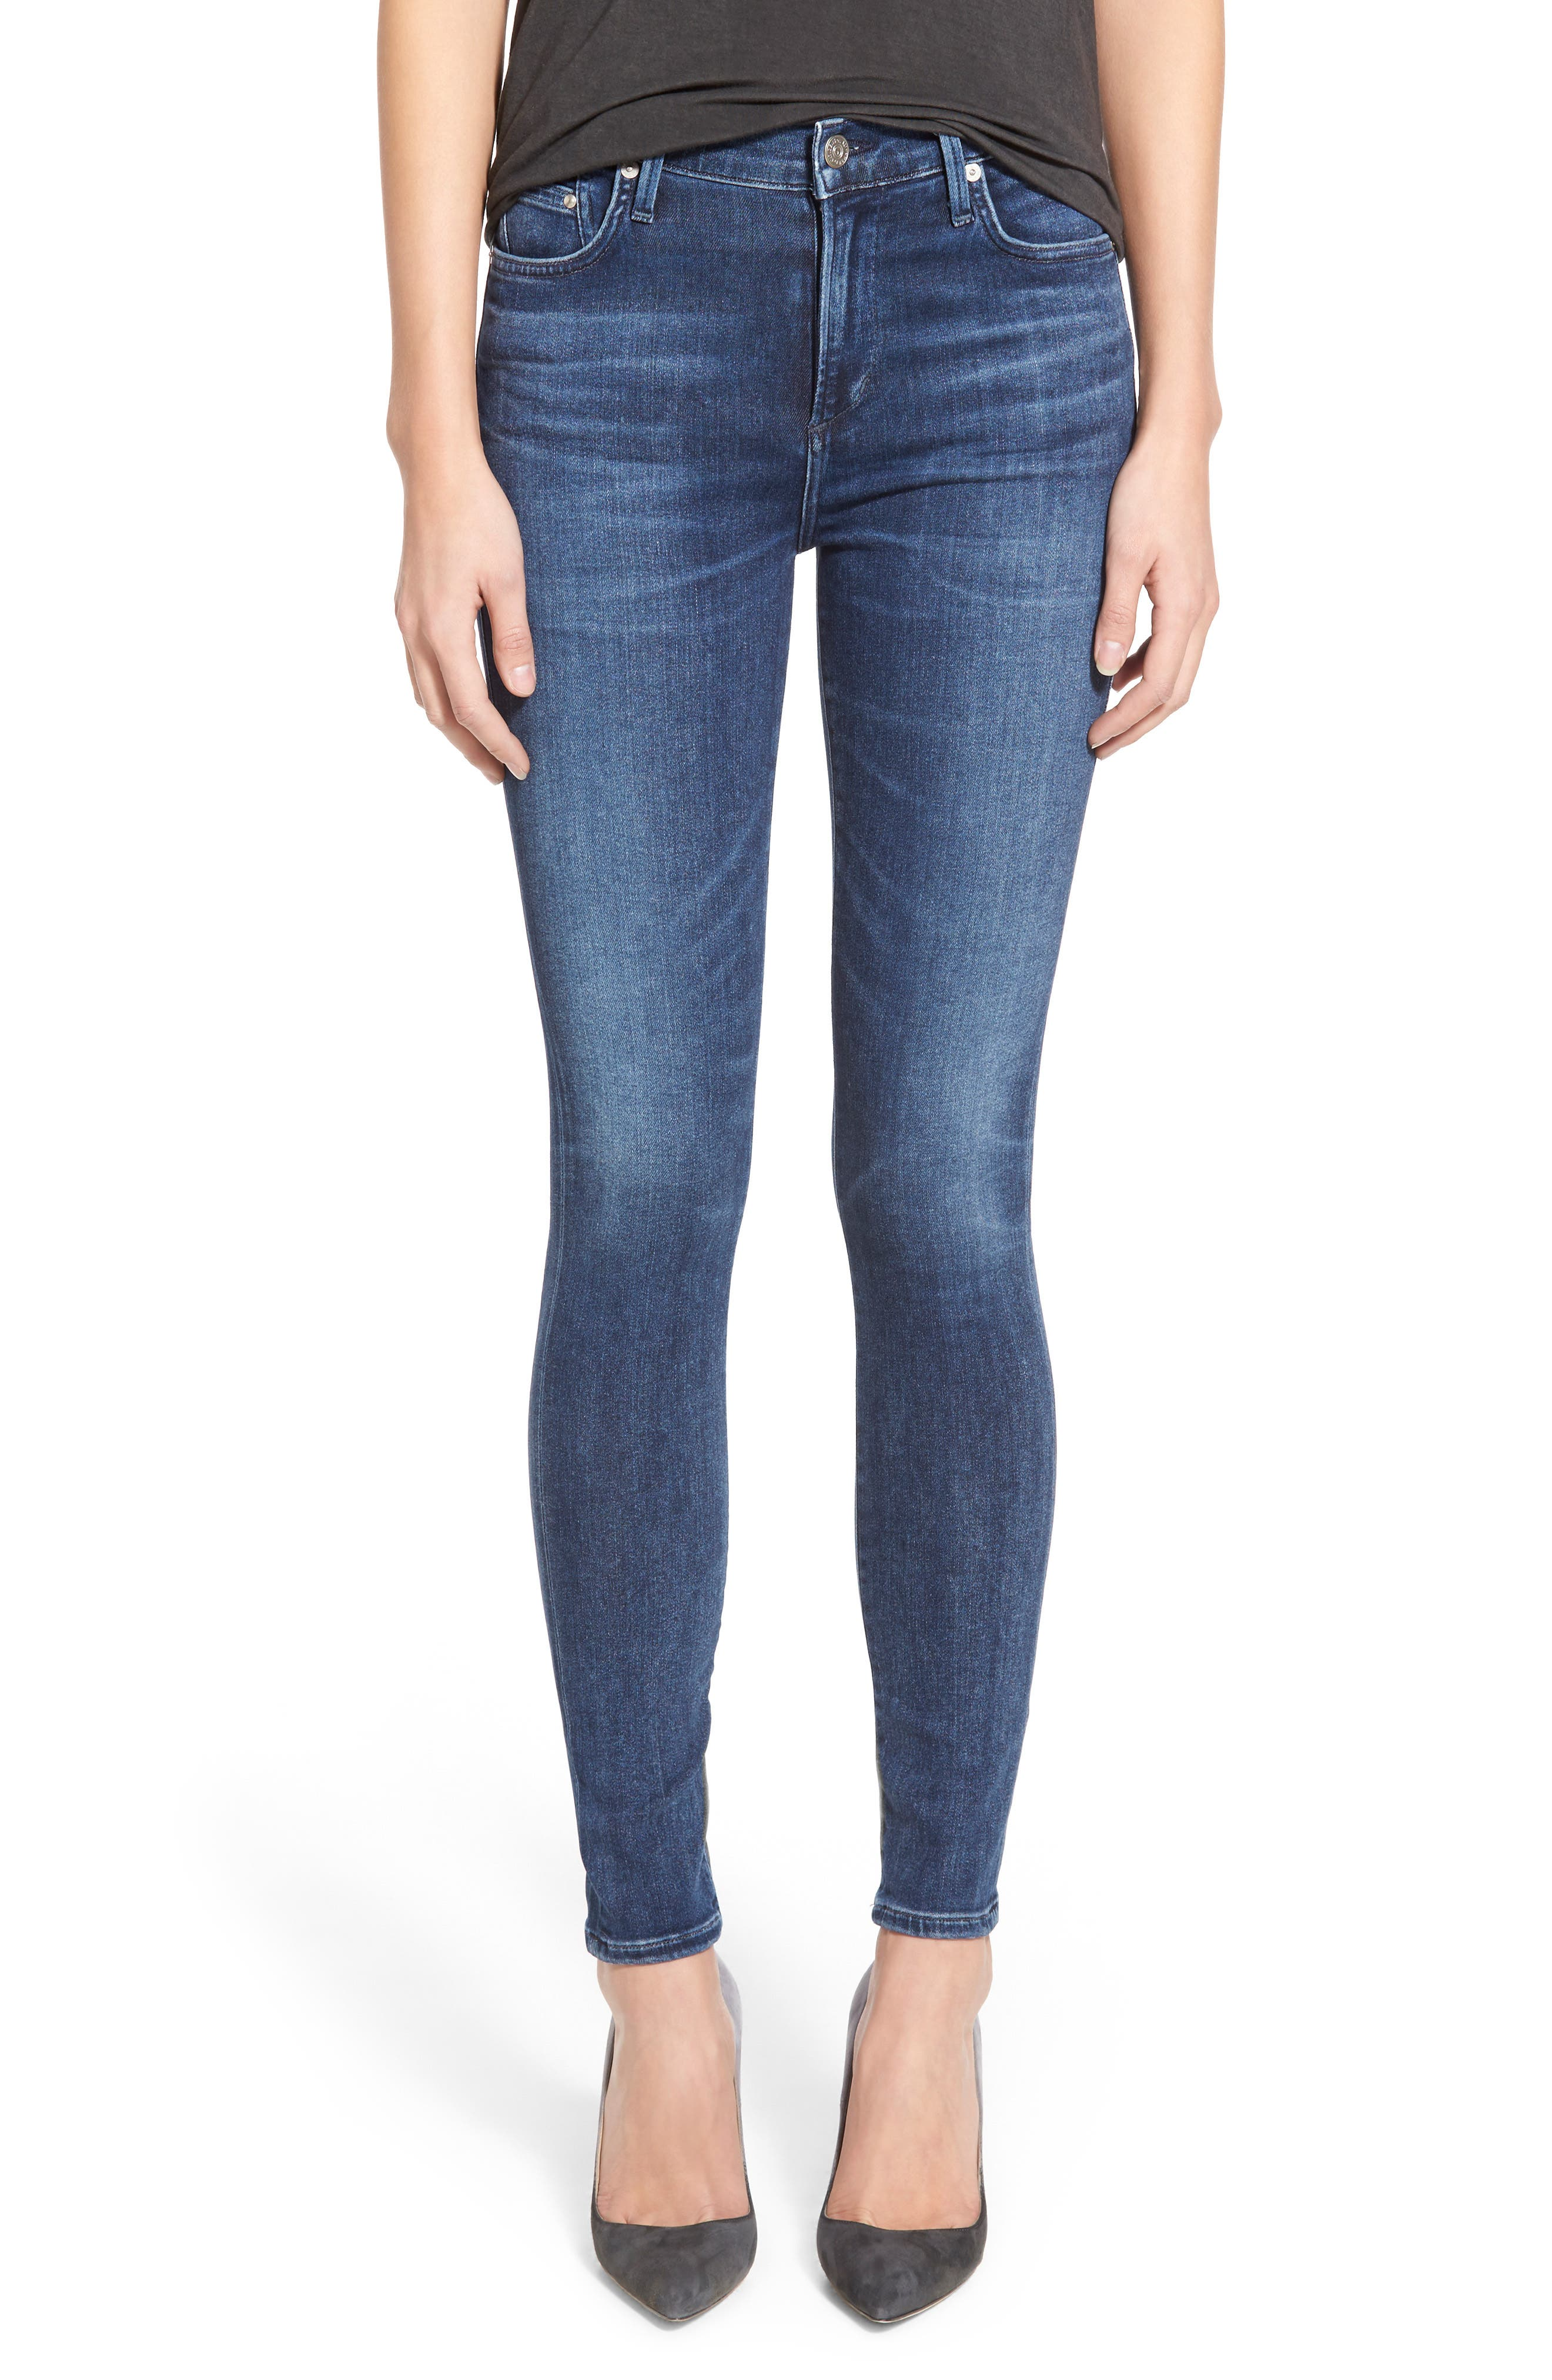 CITIZENS OF HUMANITY, Sculpt - Rocket High Waist Skinny Jeans, Main thumbnail 1, color, WAVERLY